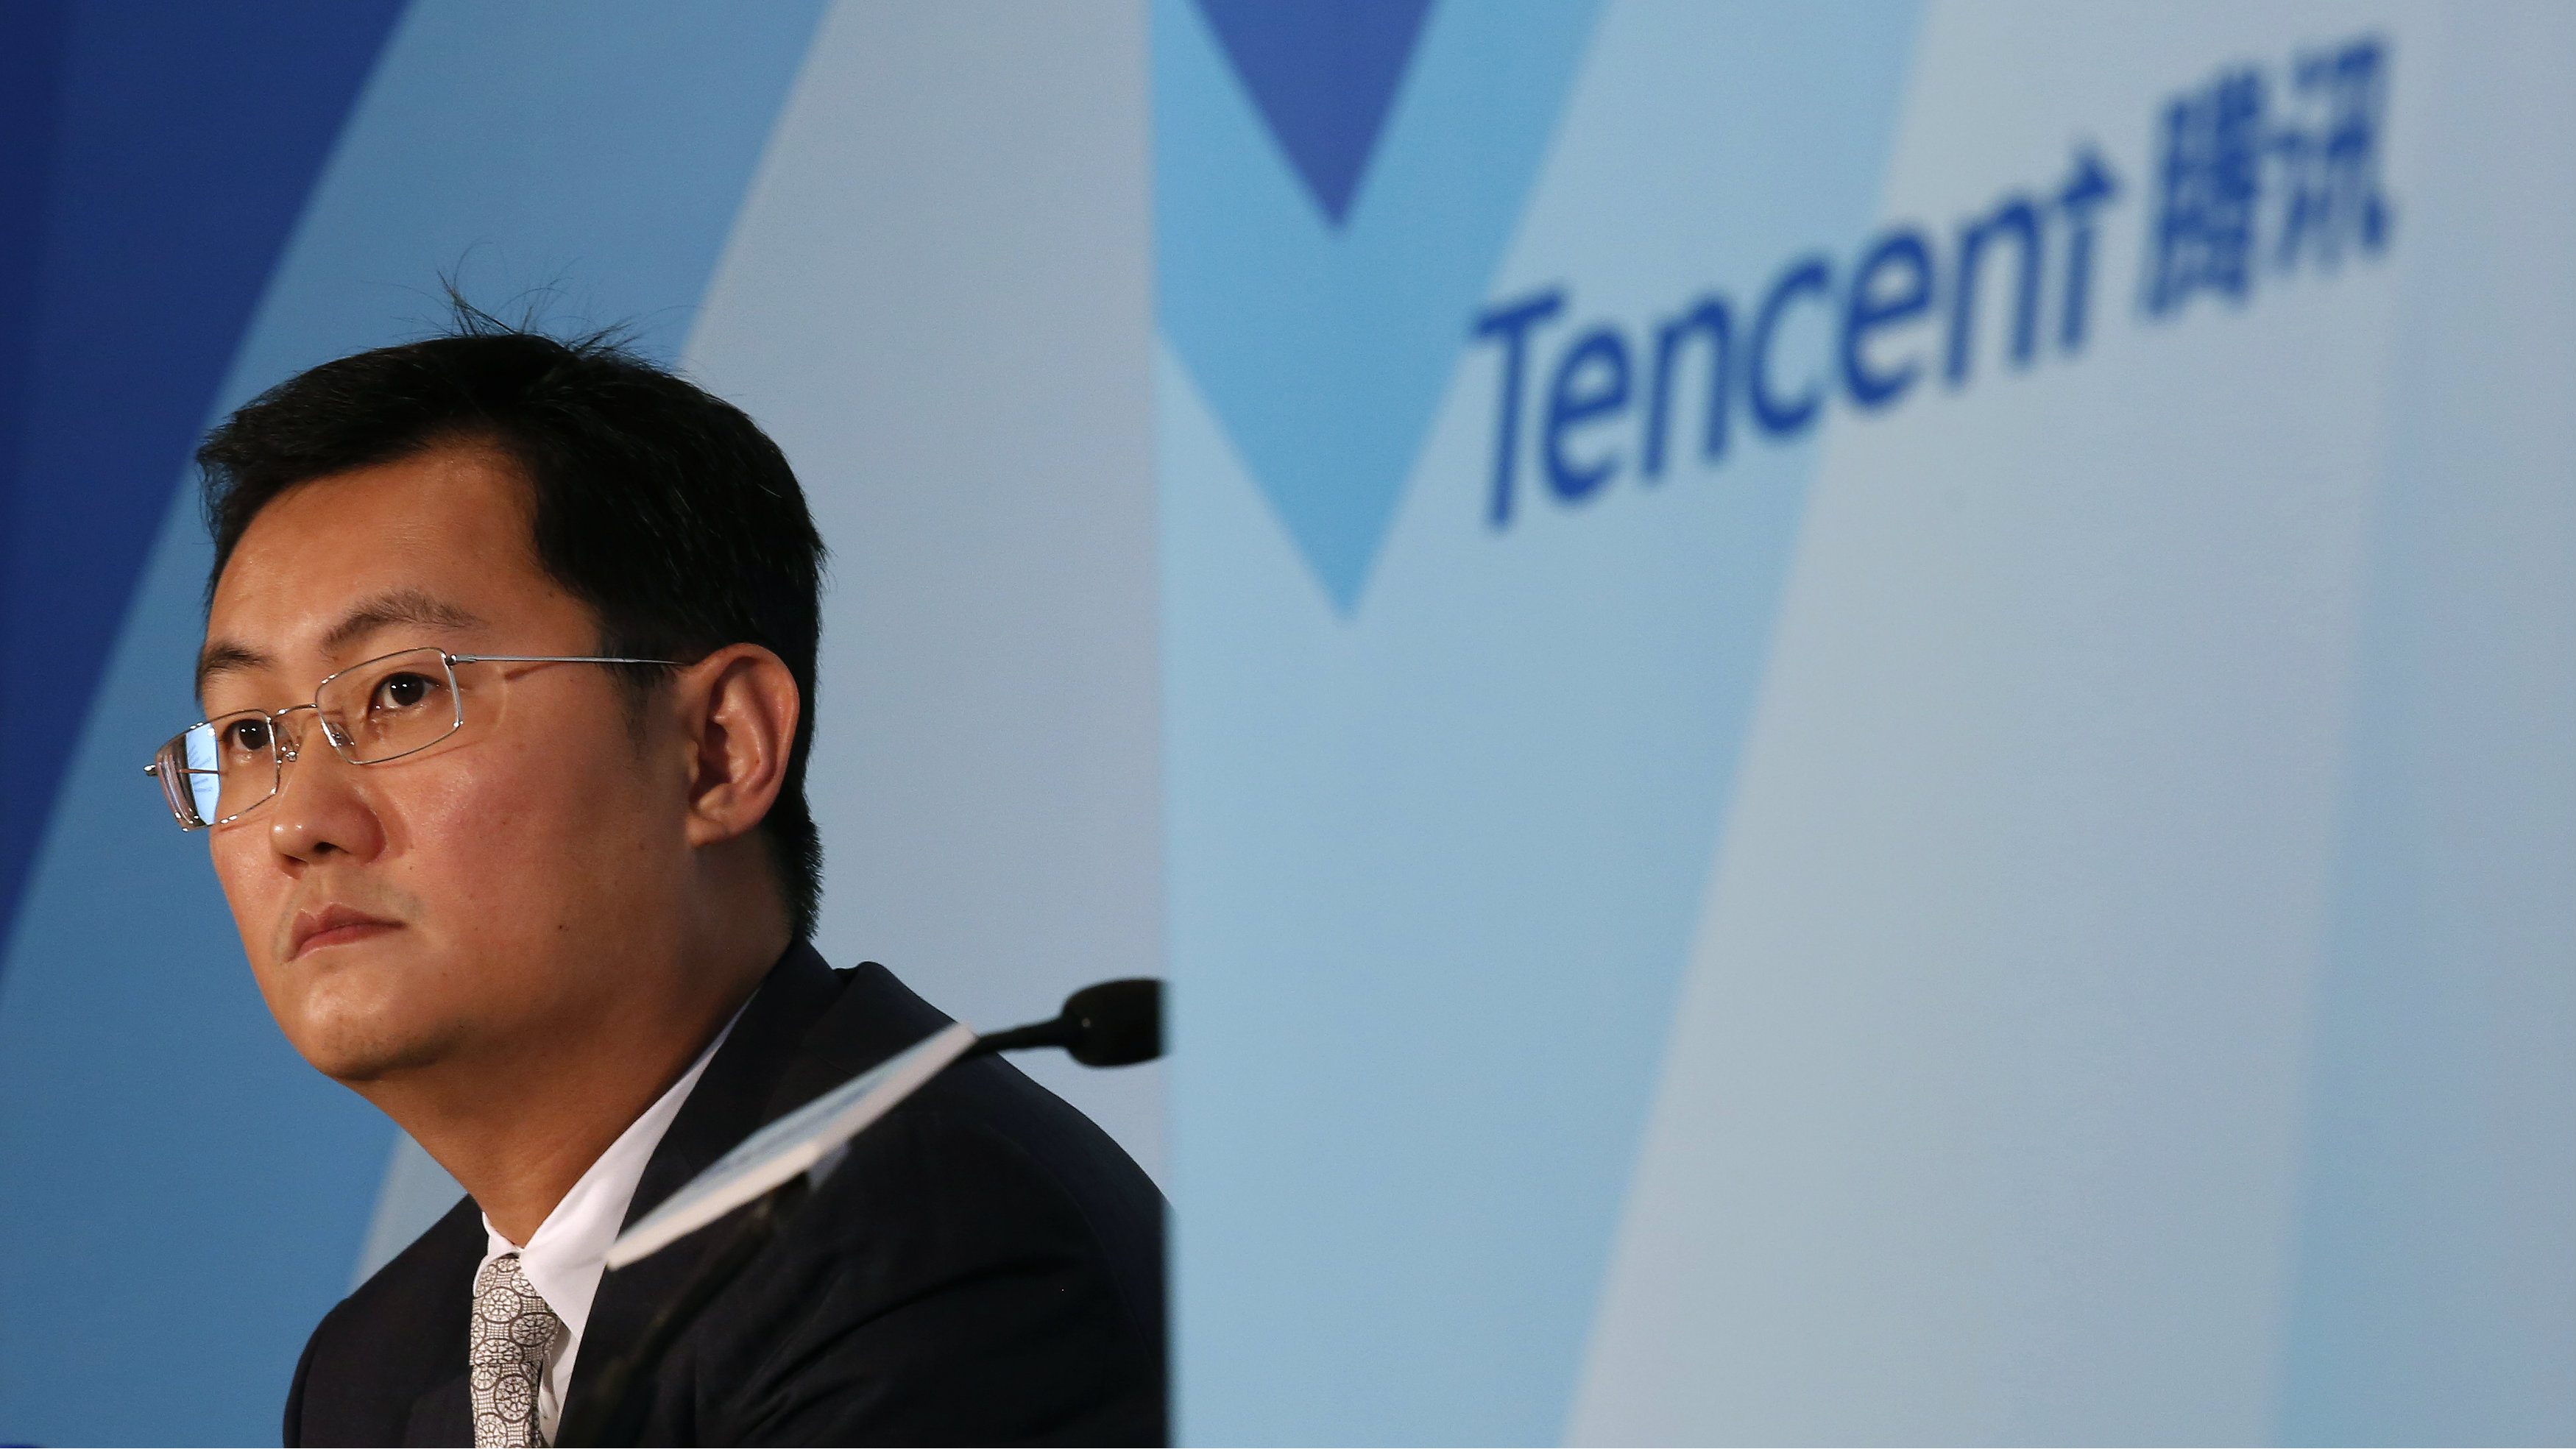 Tencent S Pony Ma Hkg 0700 Not Jack Ma Or Wang Jianlin Is Now